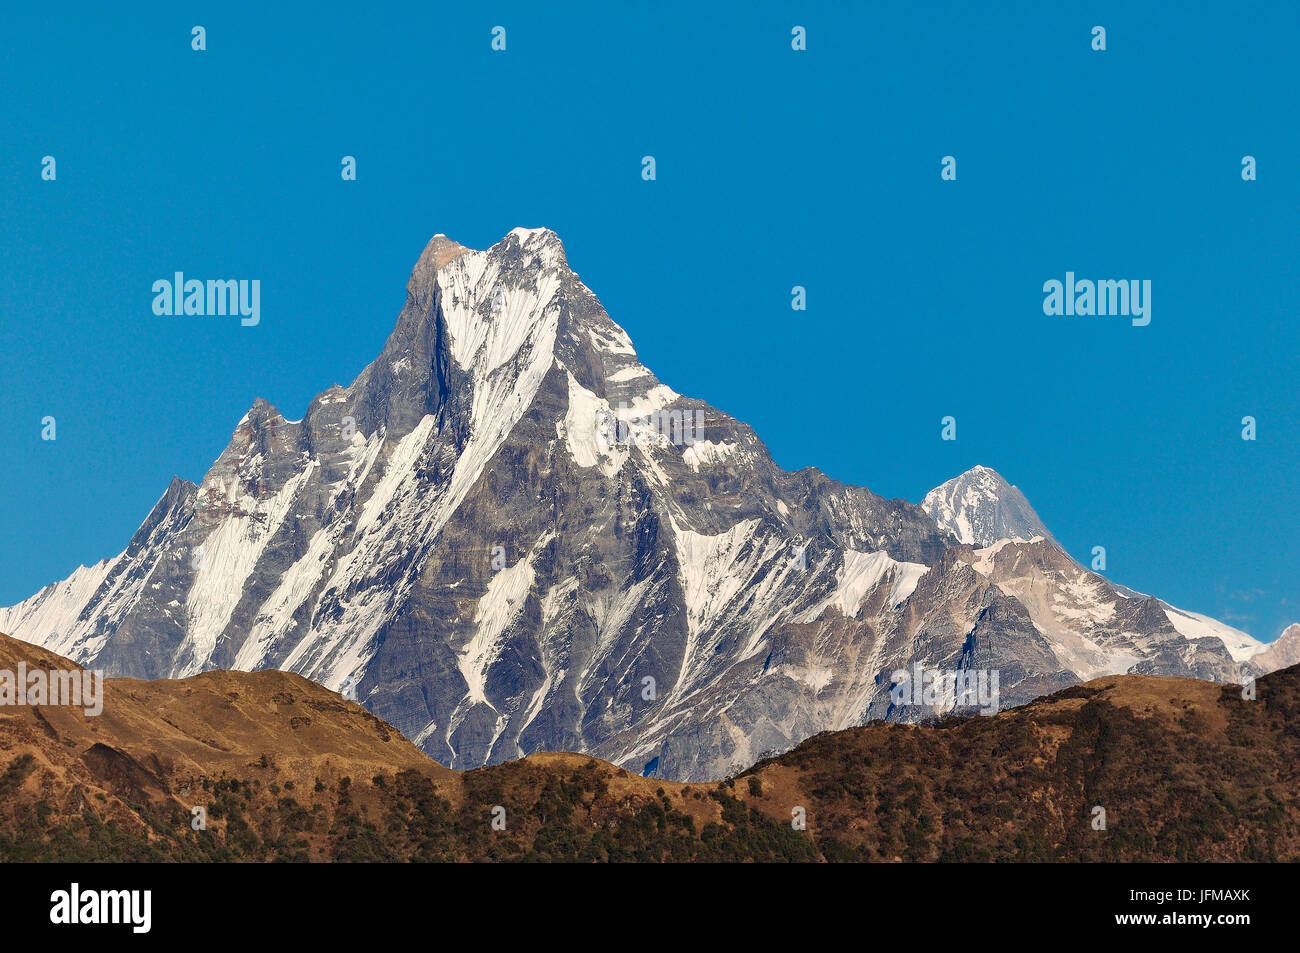 Himalaya Halle 6993 High Resolution Stock Photography And Images - Alamy